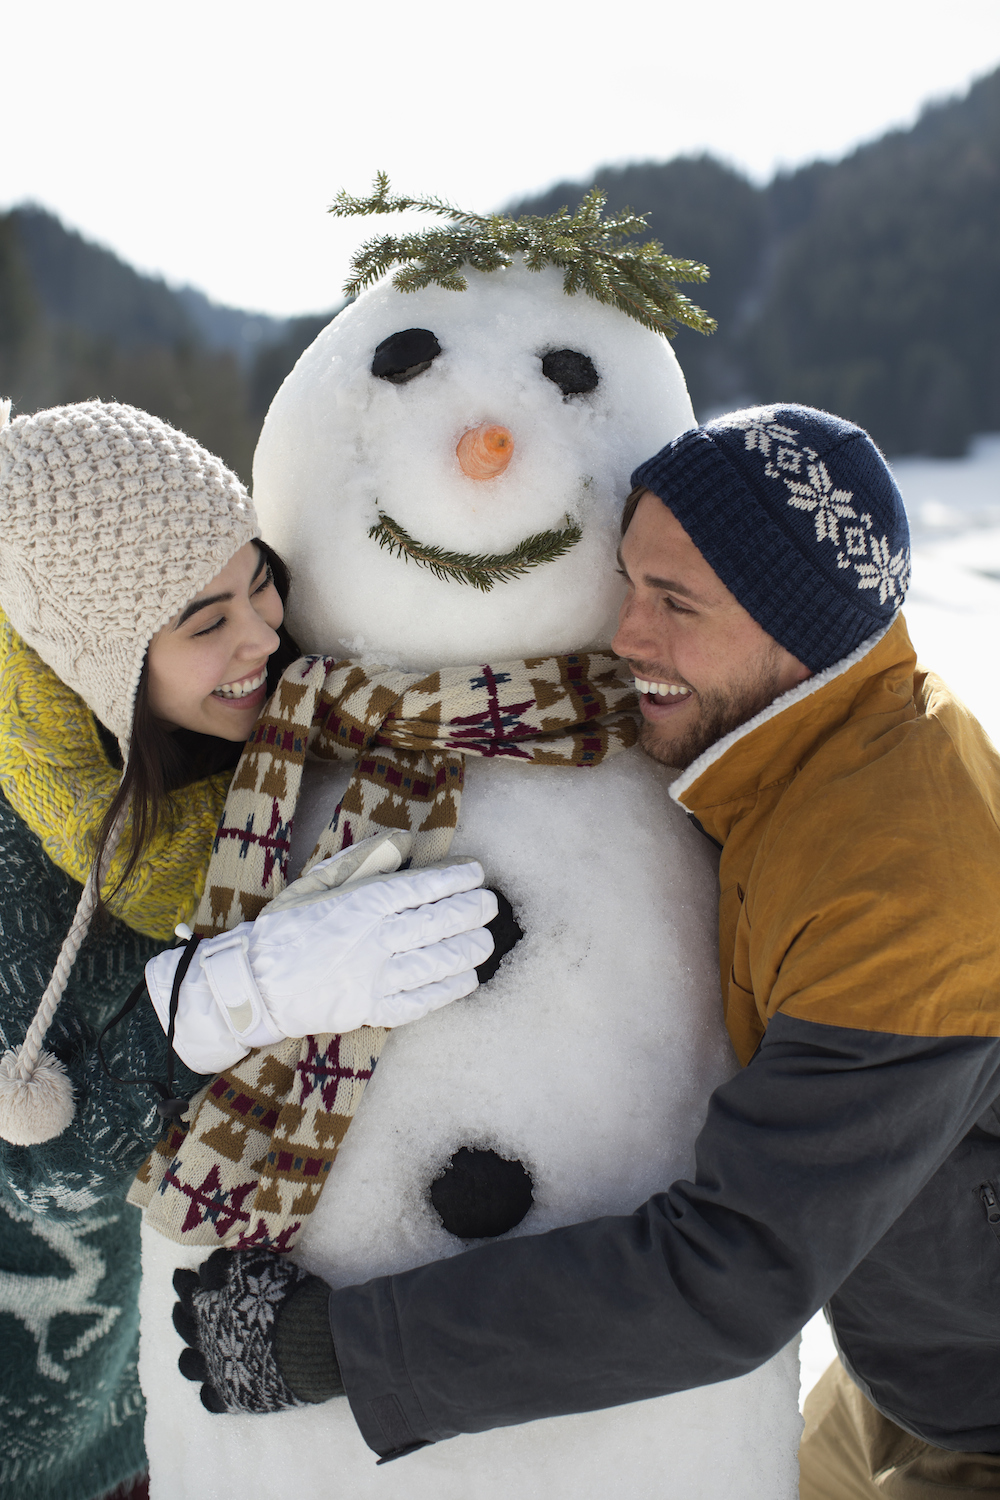 10 Creative Ways to Have Fun in the Snow